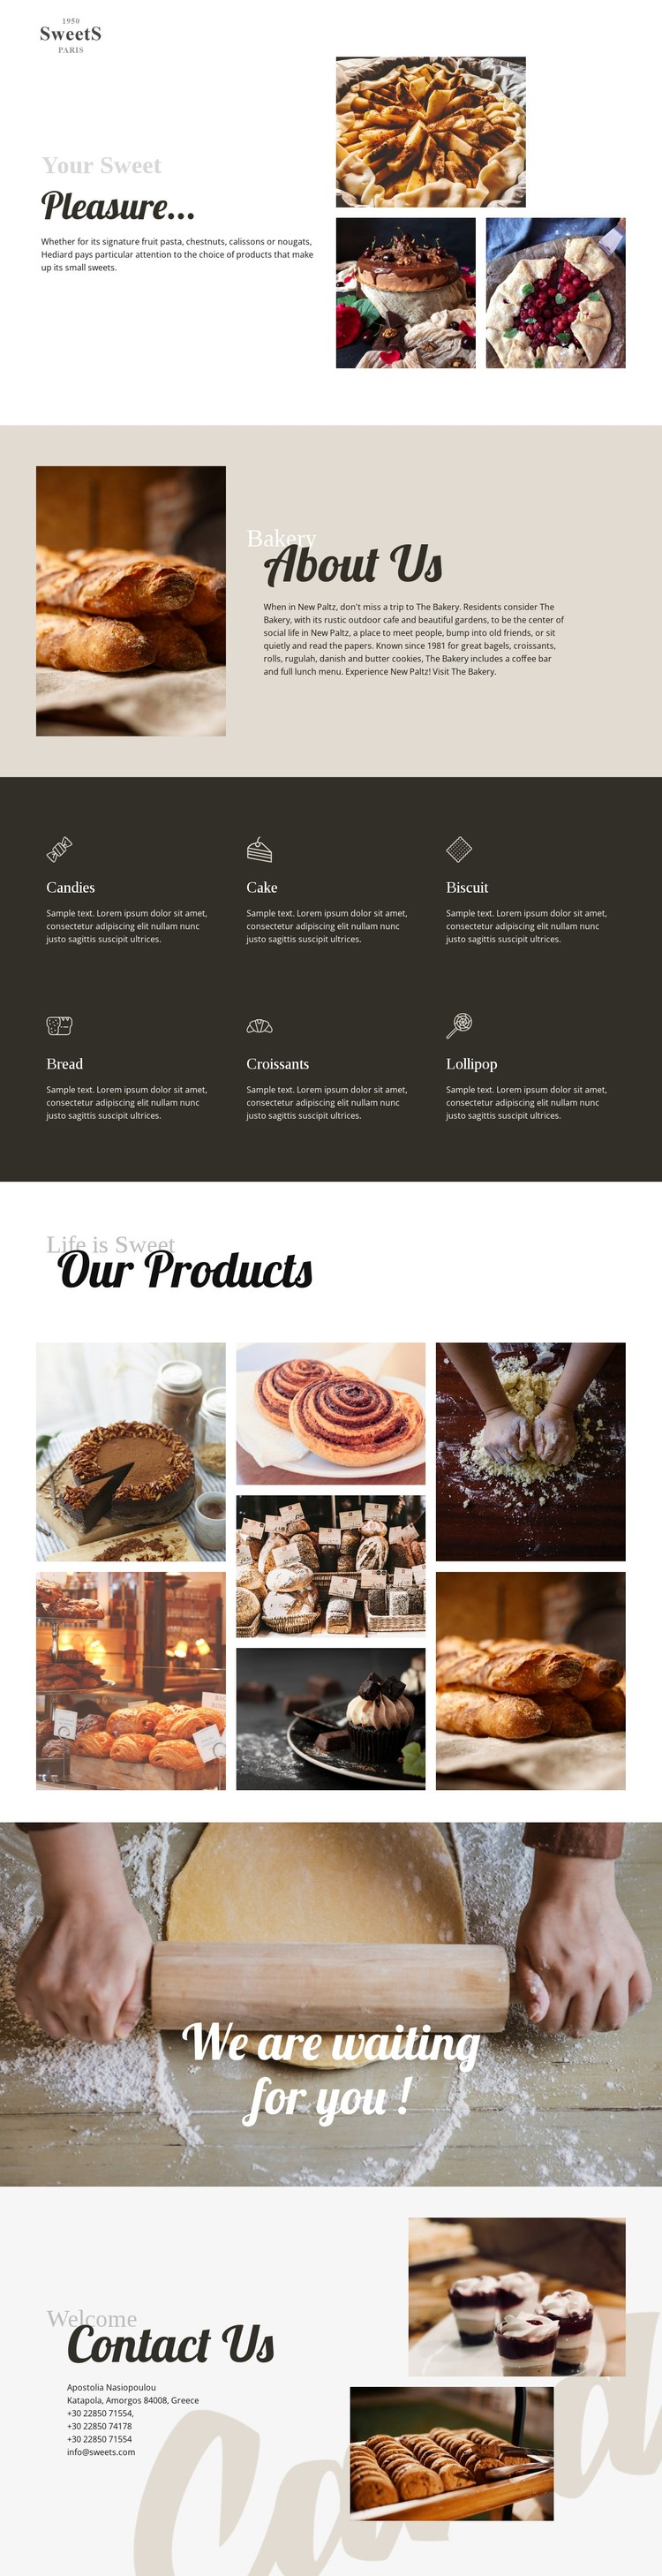 Cakes and baking food Static Site Generator